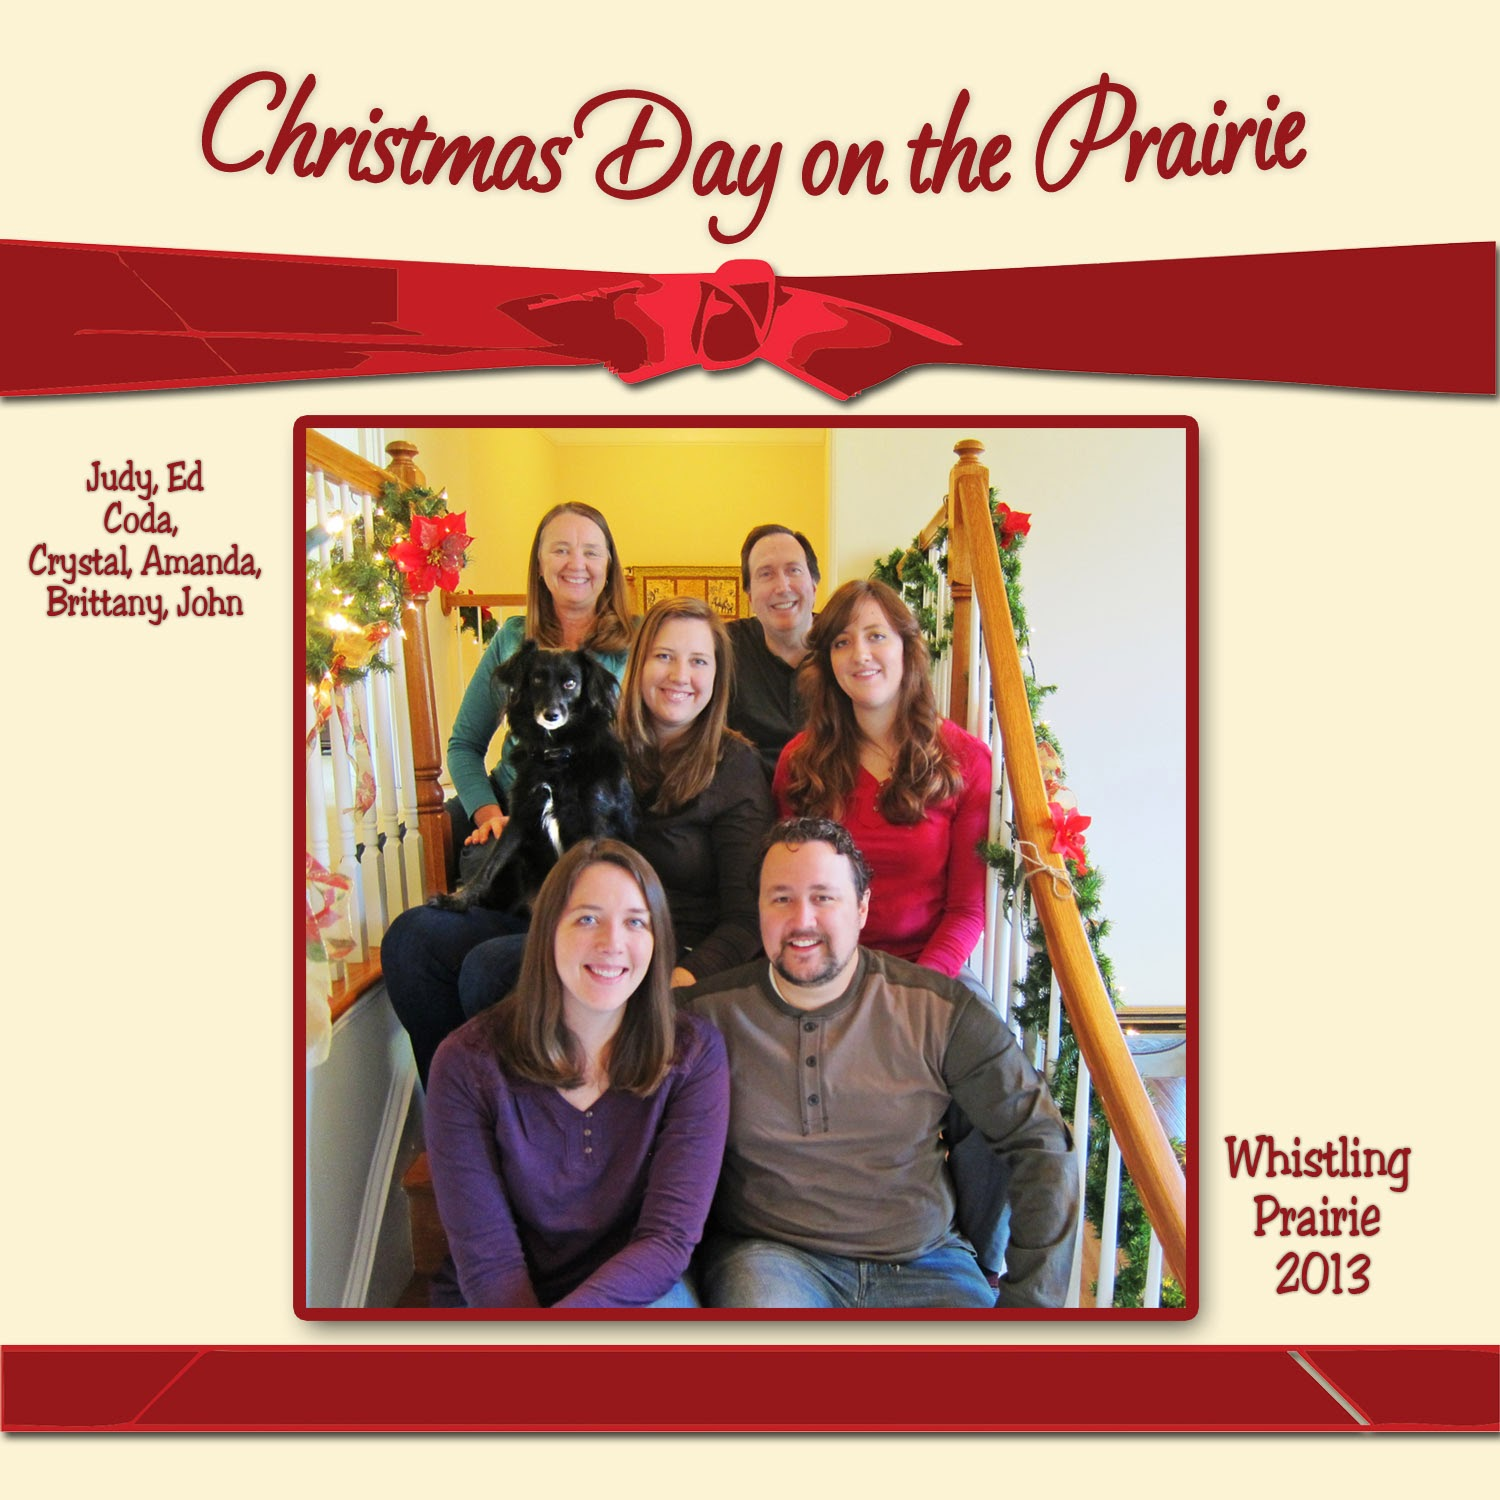 http://www.whistlingprairie.com/christmas-day-on-the-prairie/